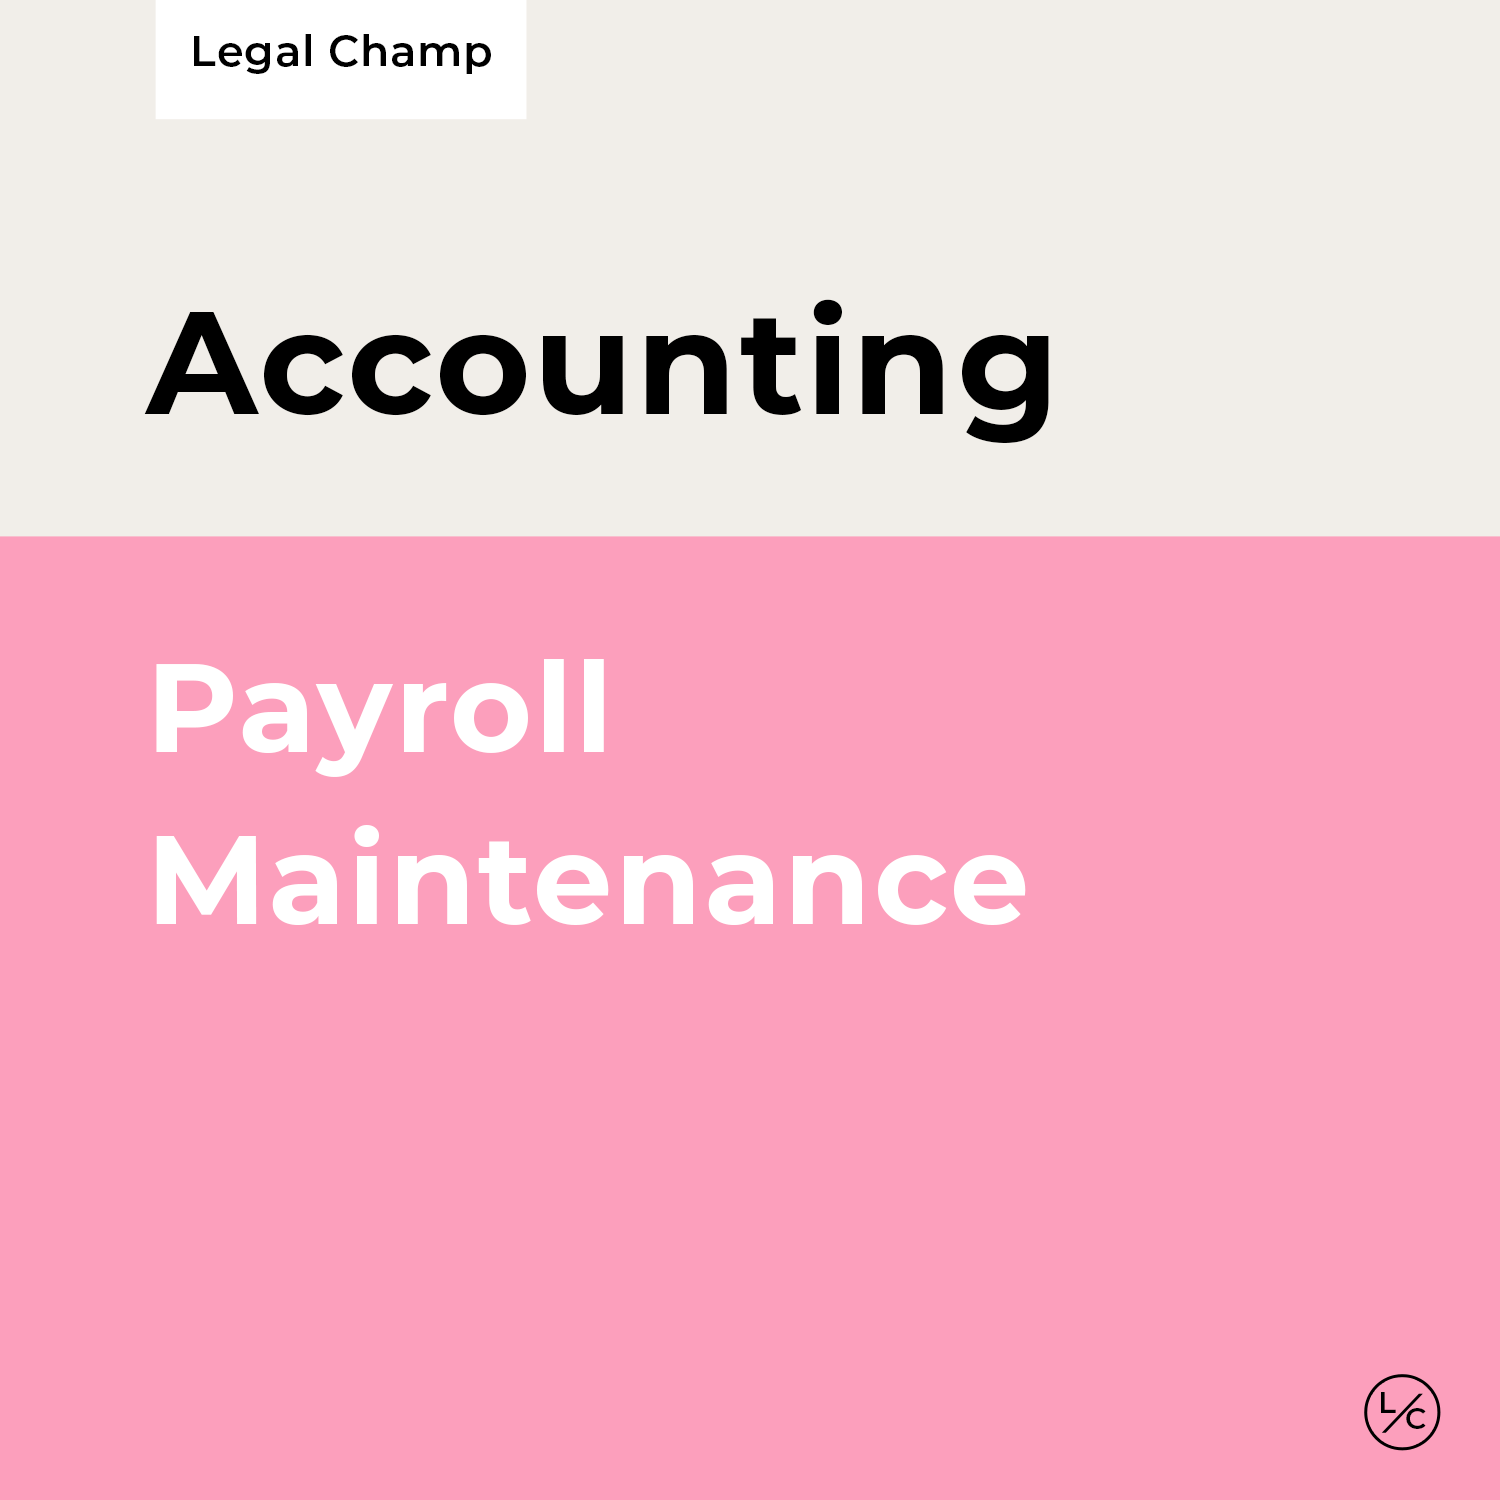 Payroll Maintenance